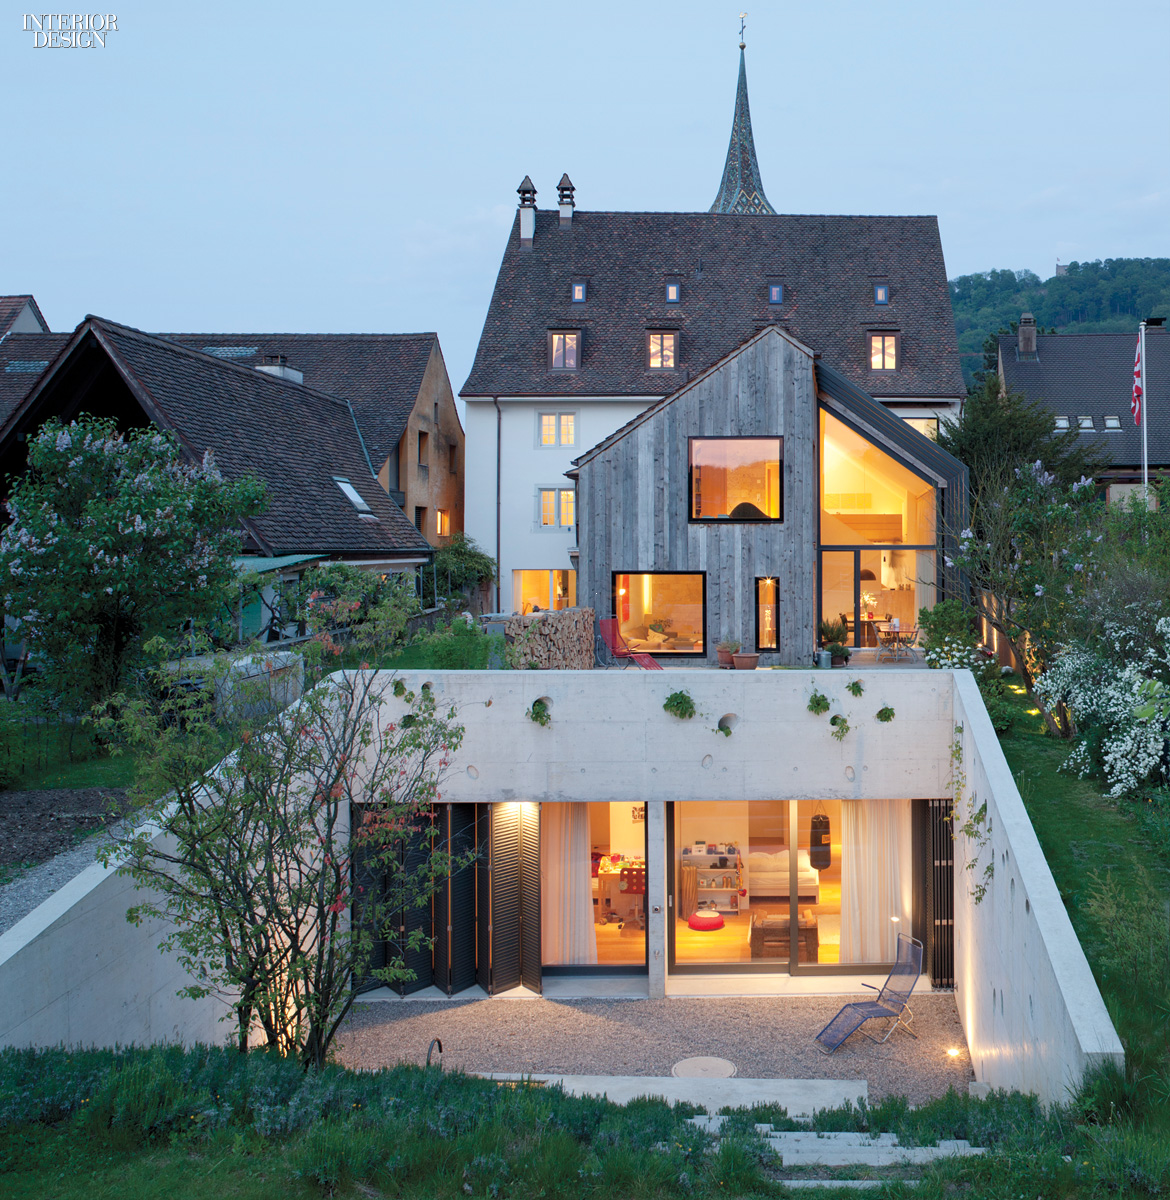 martinkeeis.me] 100+ Swiss Home Design Images | Lichterloh ...